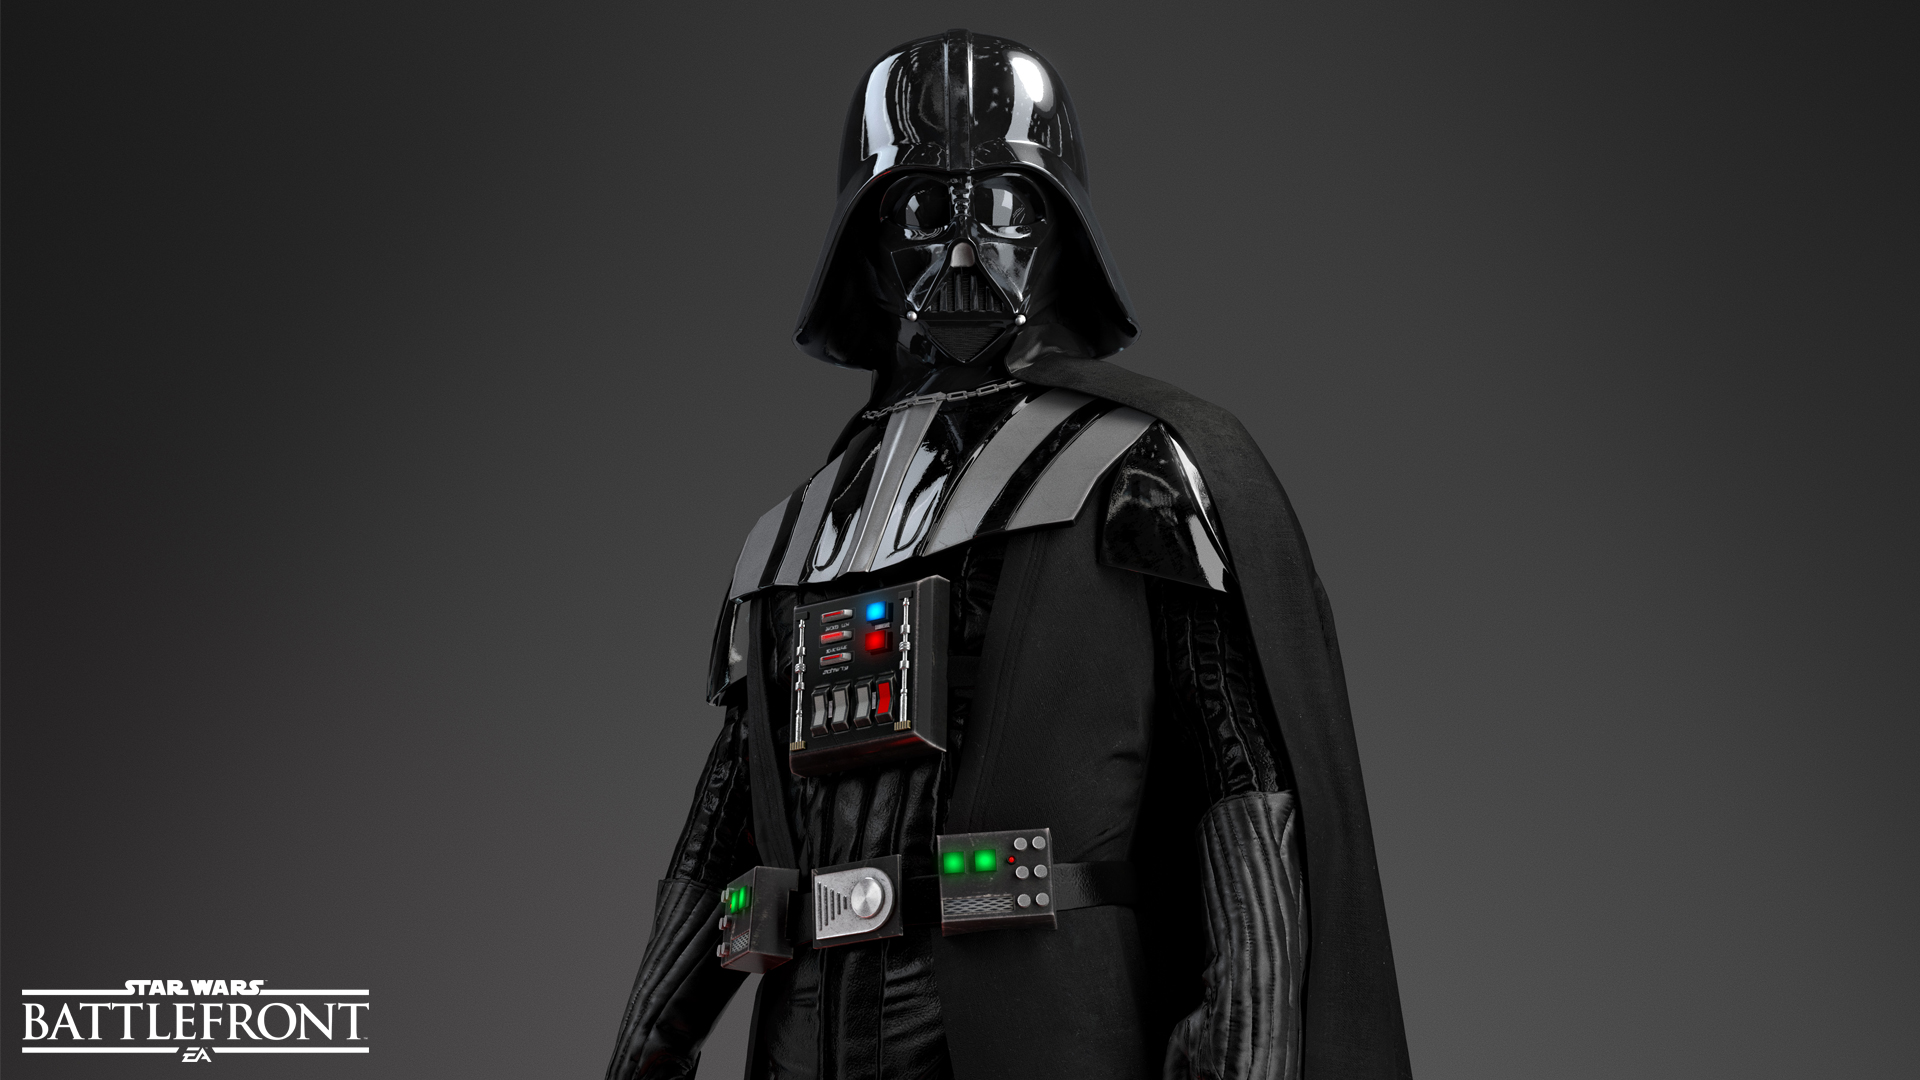 z oczy cy w star wars battlefront darth vader star. Black Bedroom Furniture Sets. Home Design Ideas